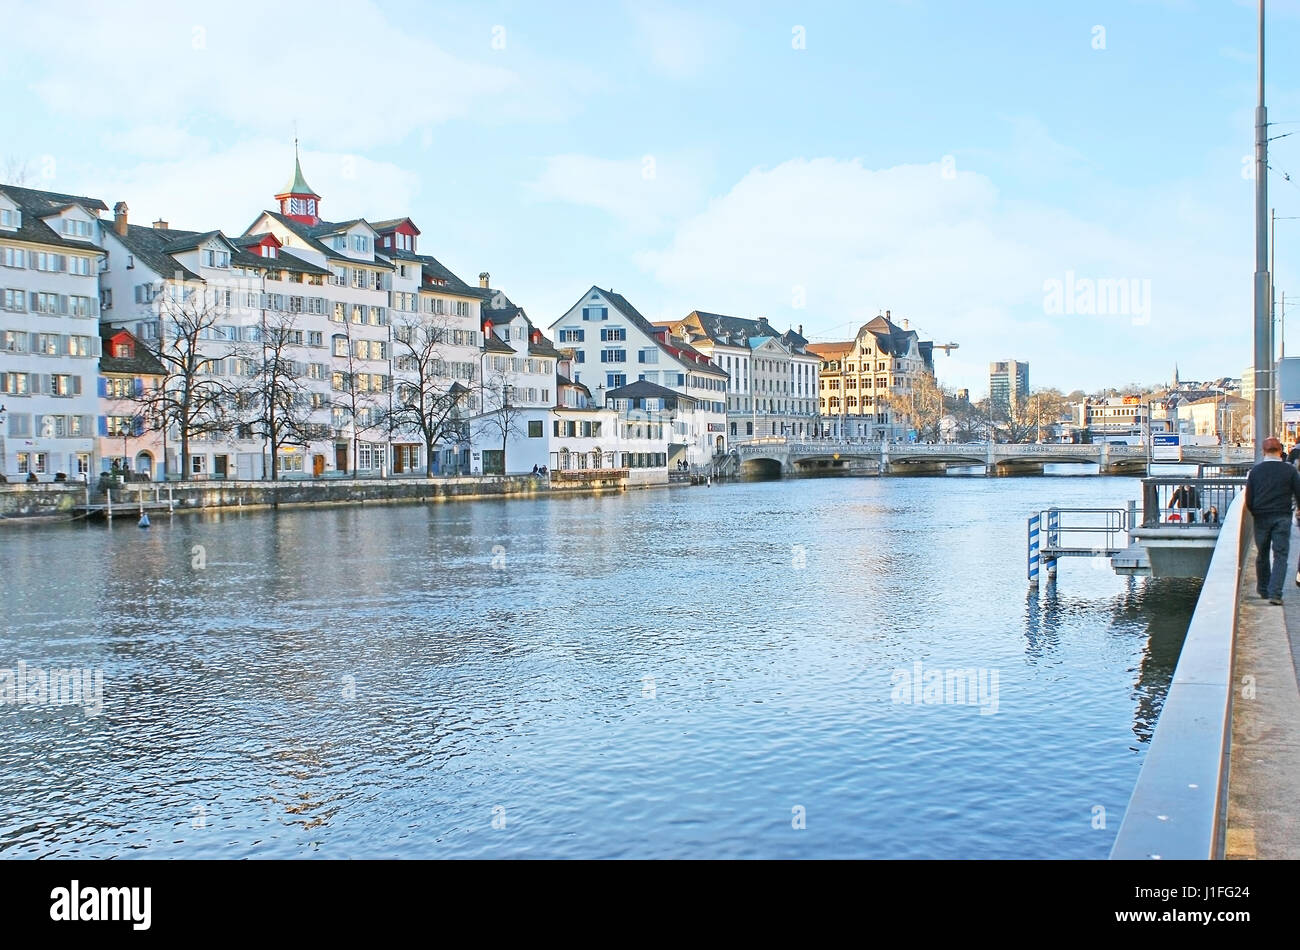 ZURICH, SWITZERLAND - MARCH 20, 2011: The walk on Limmat quay with a view on the houses and towers of Schipfe quarter, - Stock Image